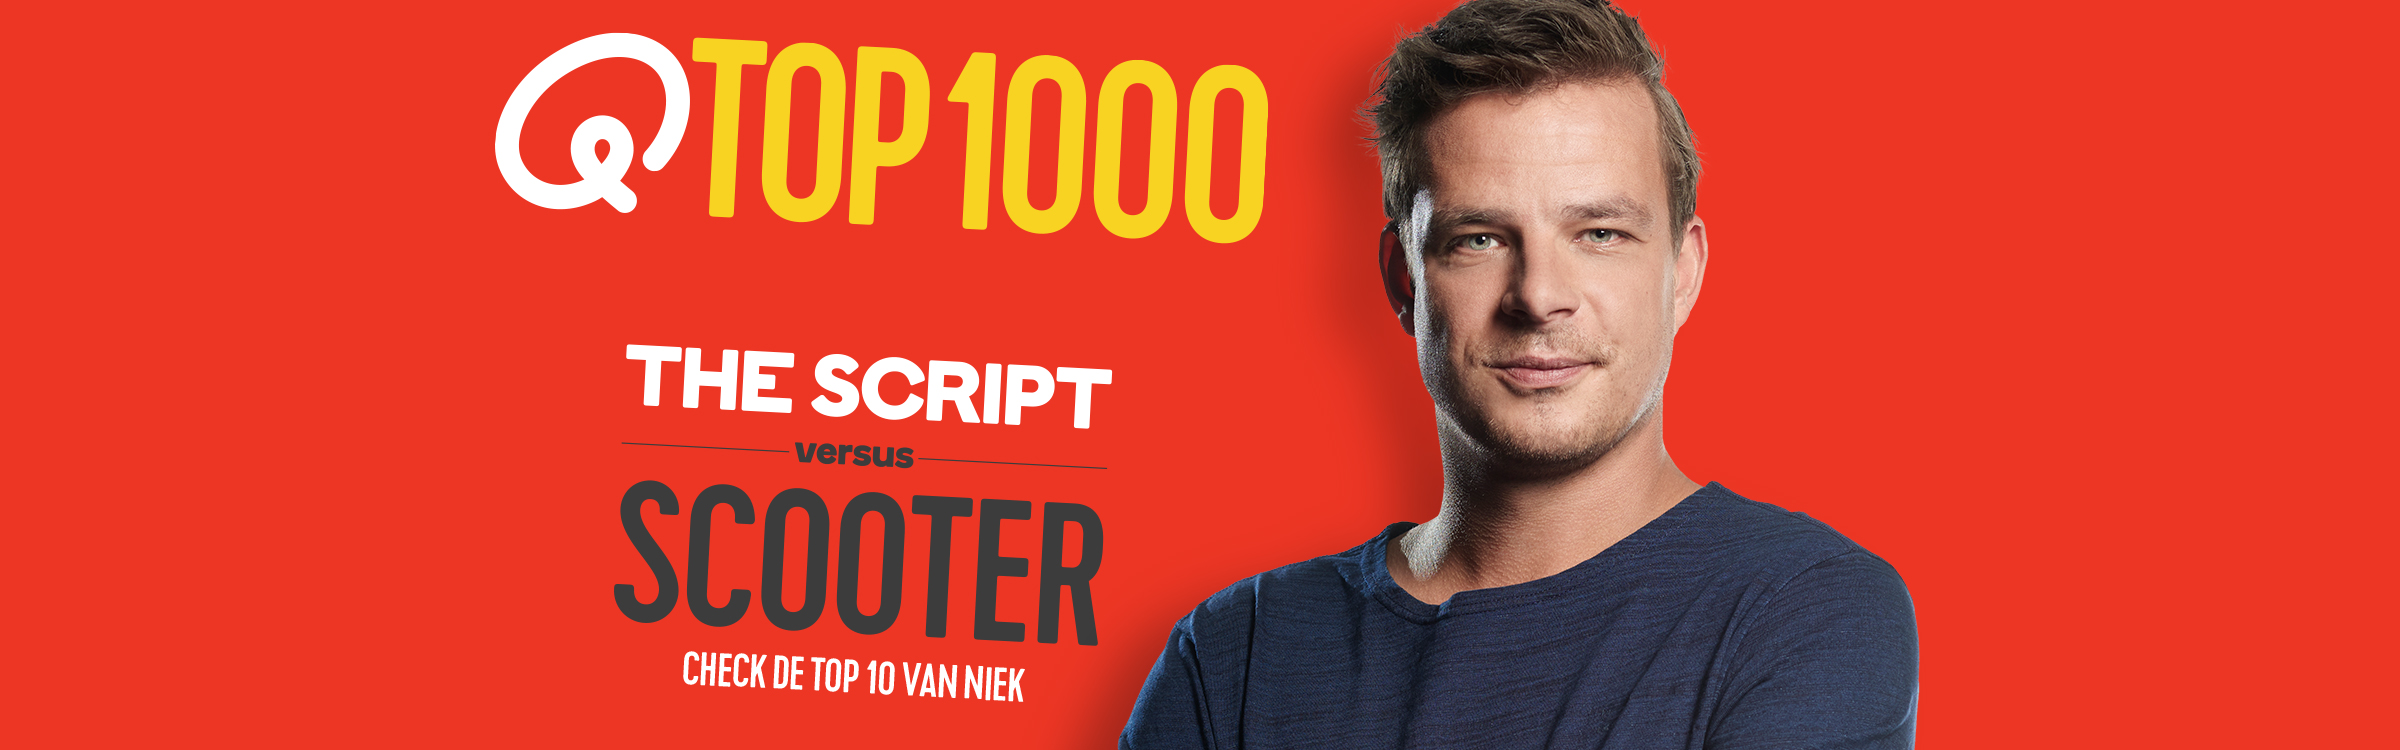 Qmusic actionheader top1000 djs niek